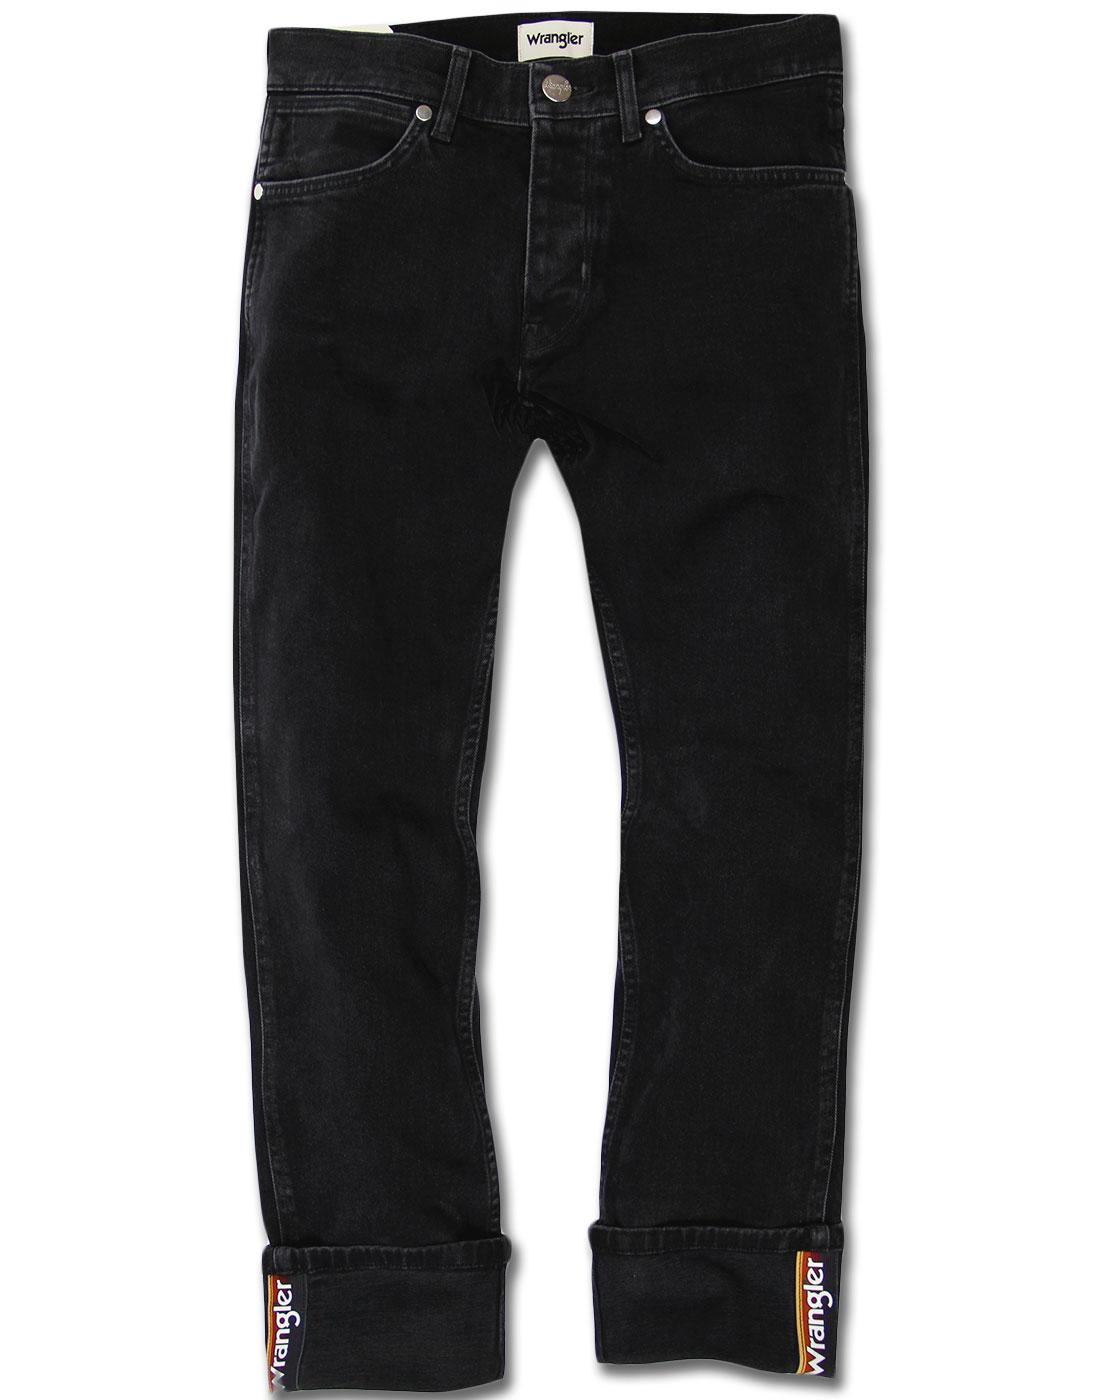 Spencer WRANGLER Retro Signature Cuff Slim Jeans